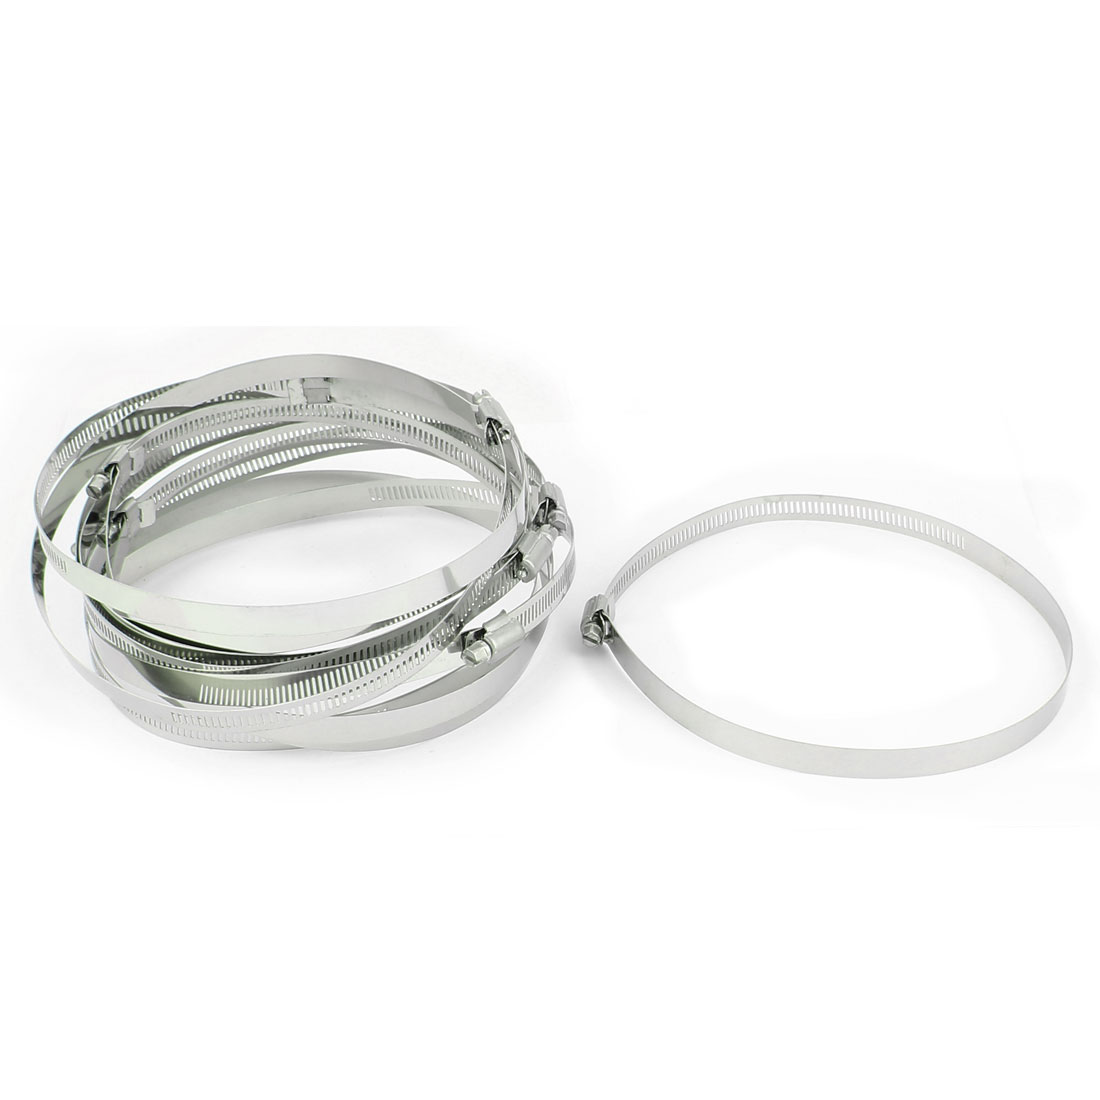 10 Pcs Adjustable 155mm-178mm Cable Tight Clamp Pipe Coolant Hose Fitting Clip Stainless Steel